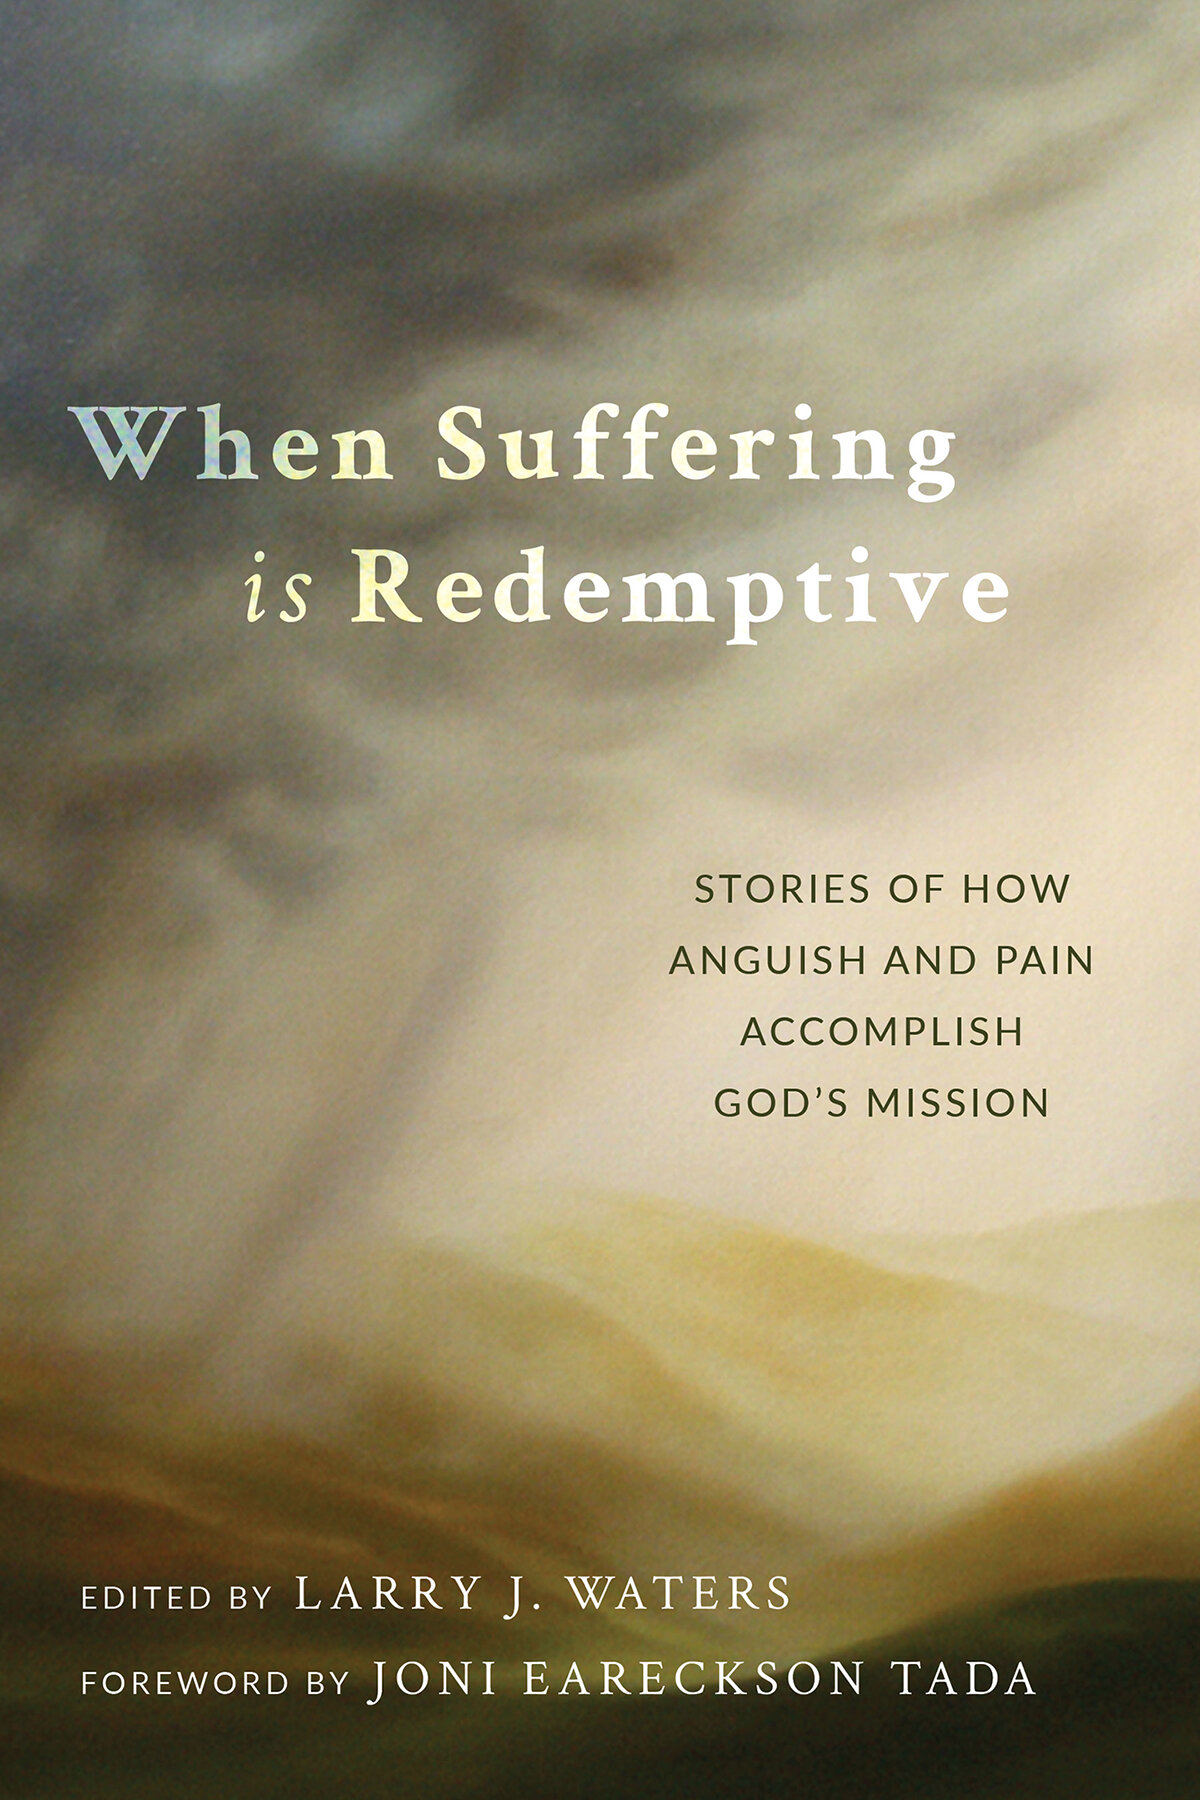 When Suffering Is Redemptive: Stories of How Anguish and Pain Accomplish God's Mission